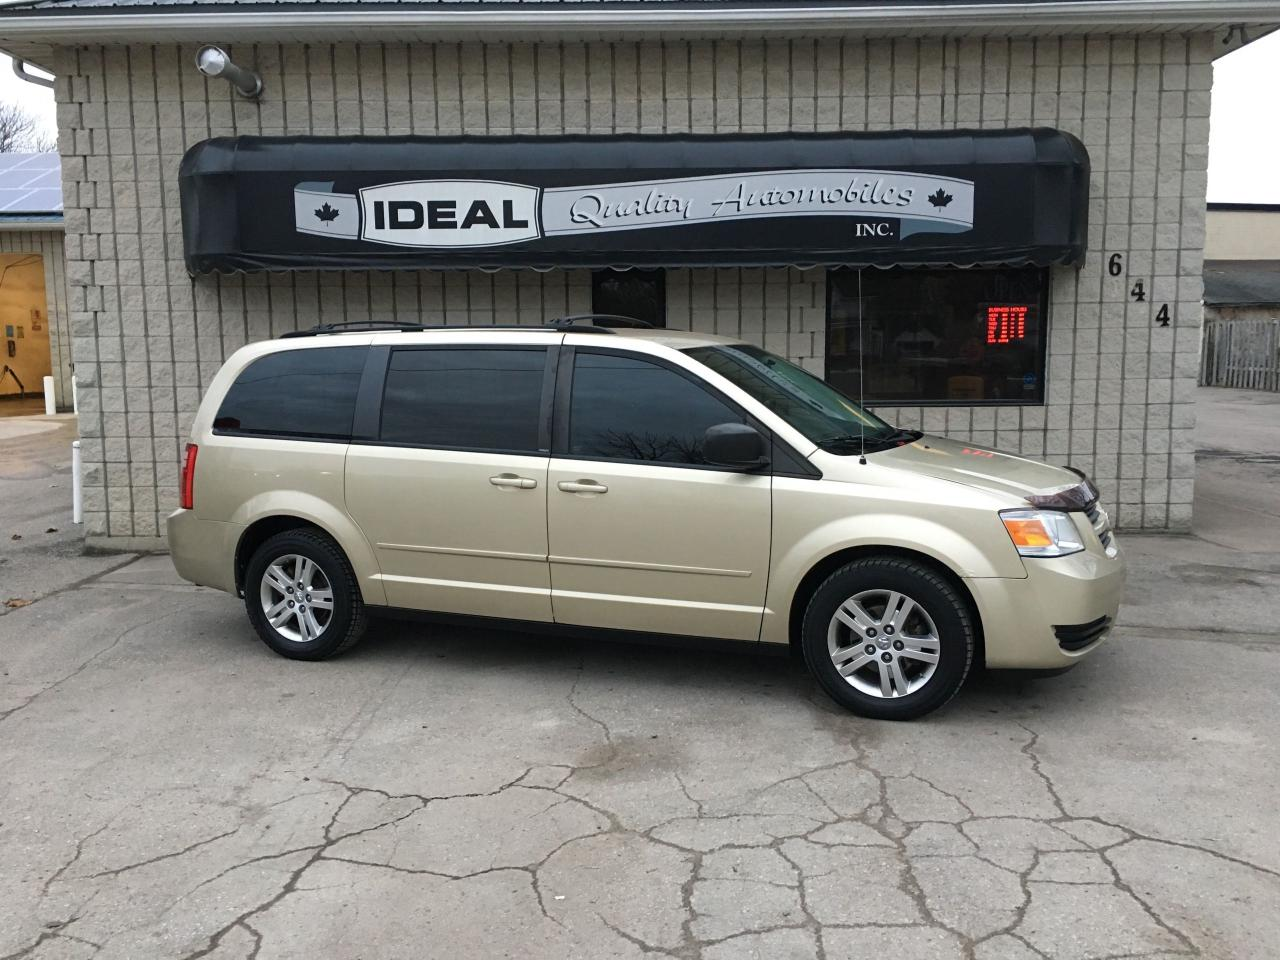 Used 2010 Dodge Grand Caravan Sxt For Sale In Mount Brydges Ontario